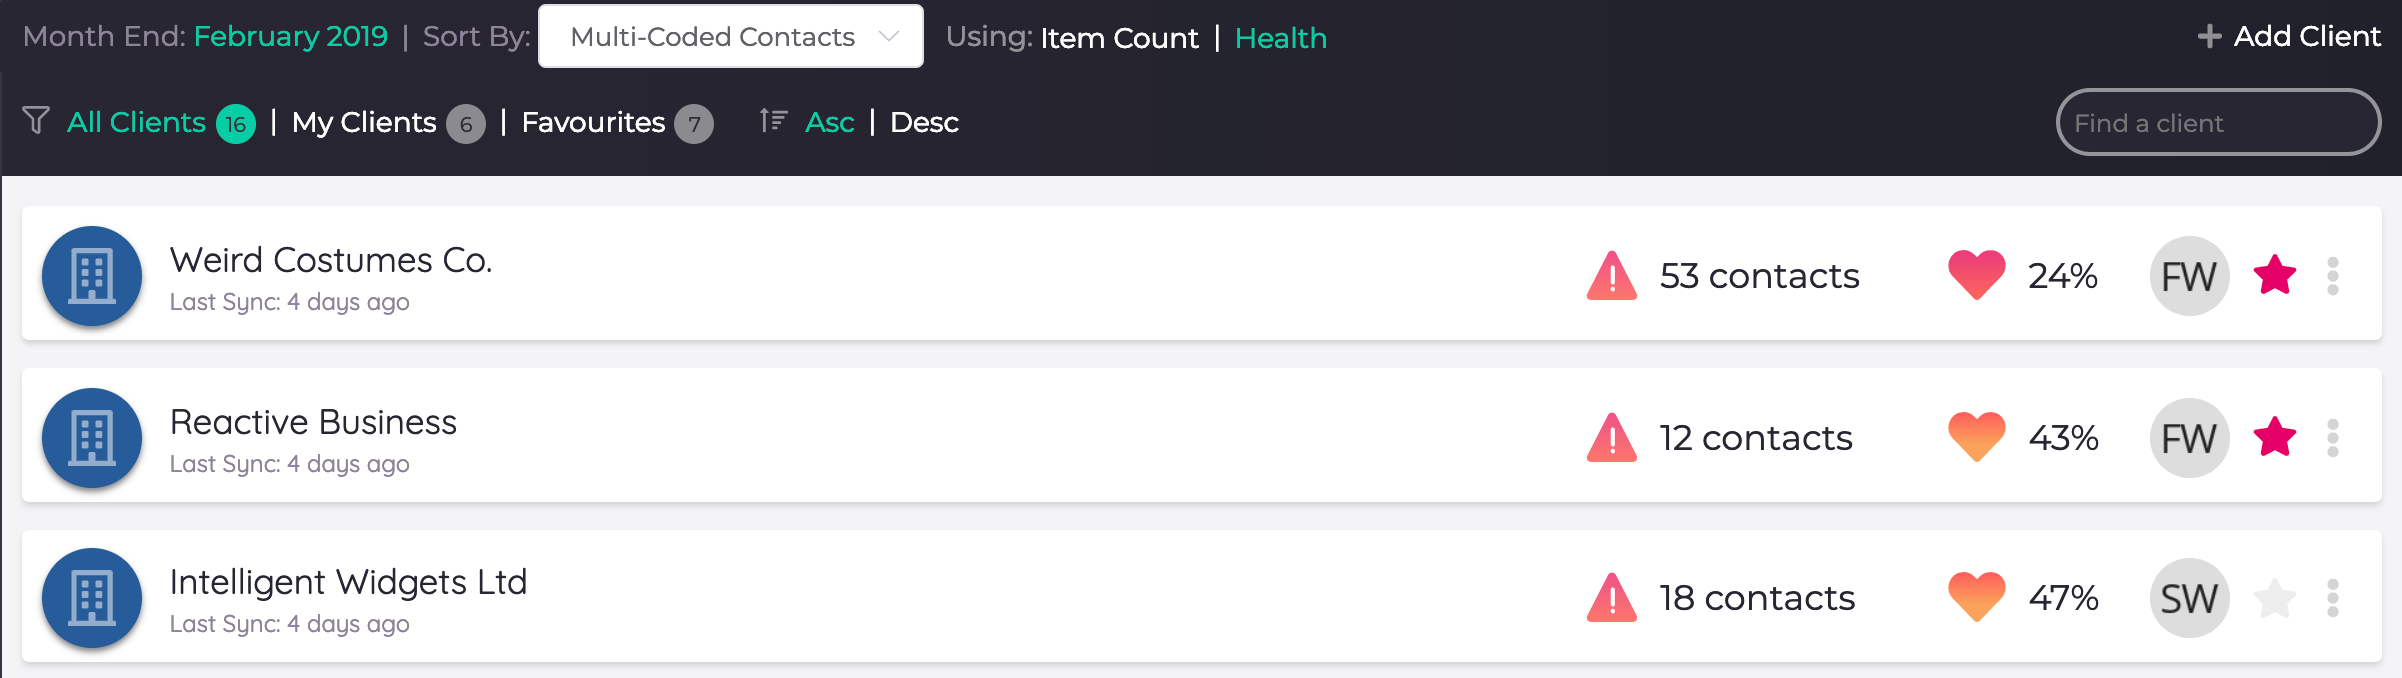 Client List sorted by Multi-Coded Contacts Health Score